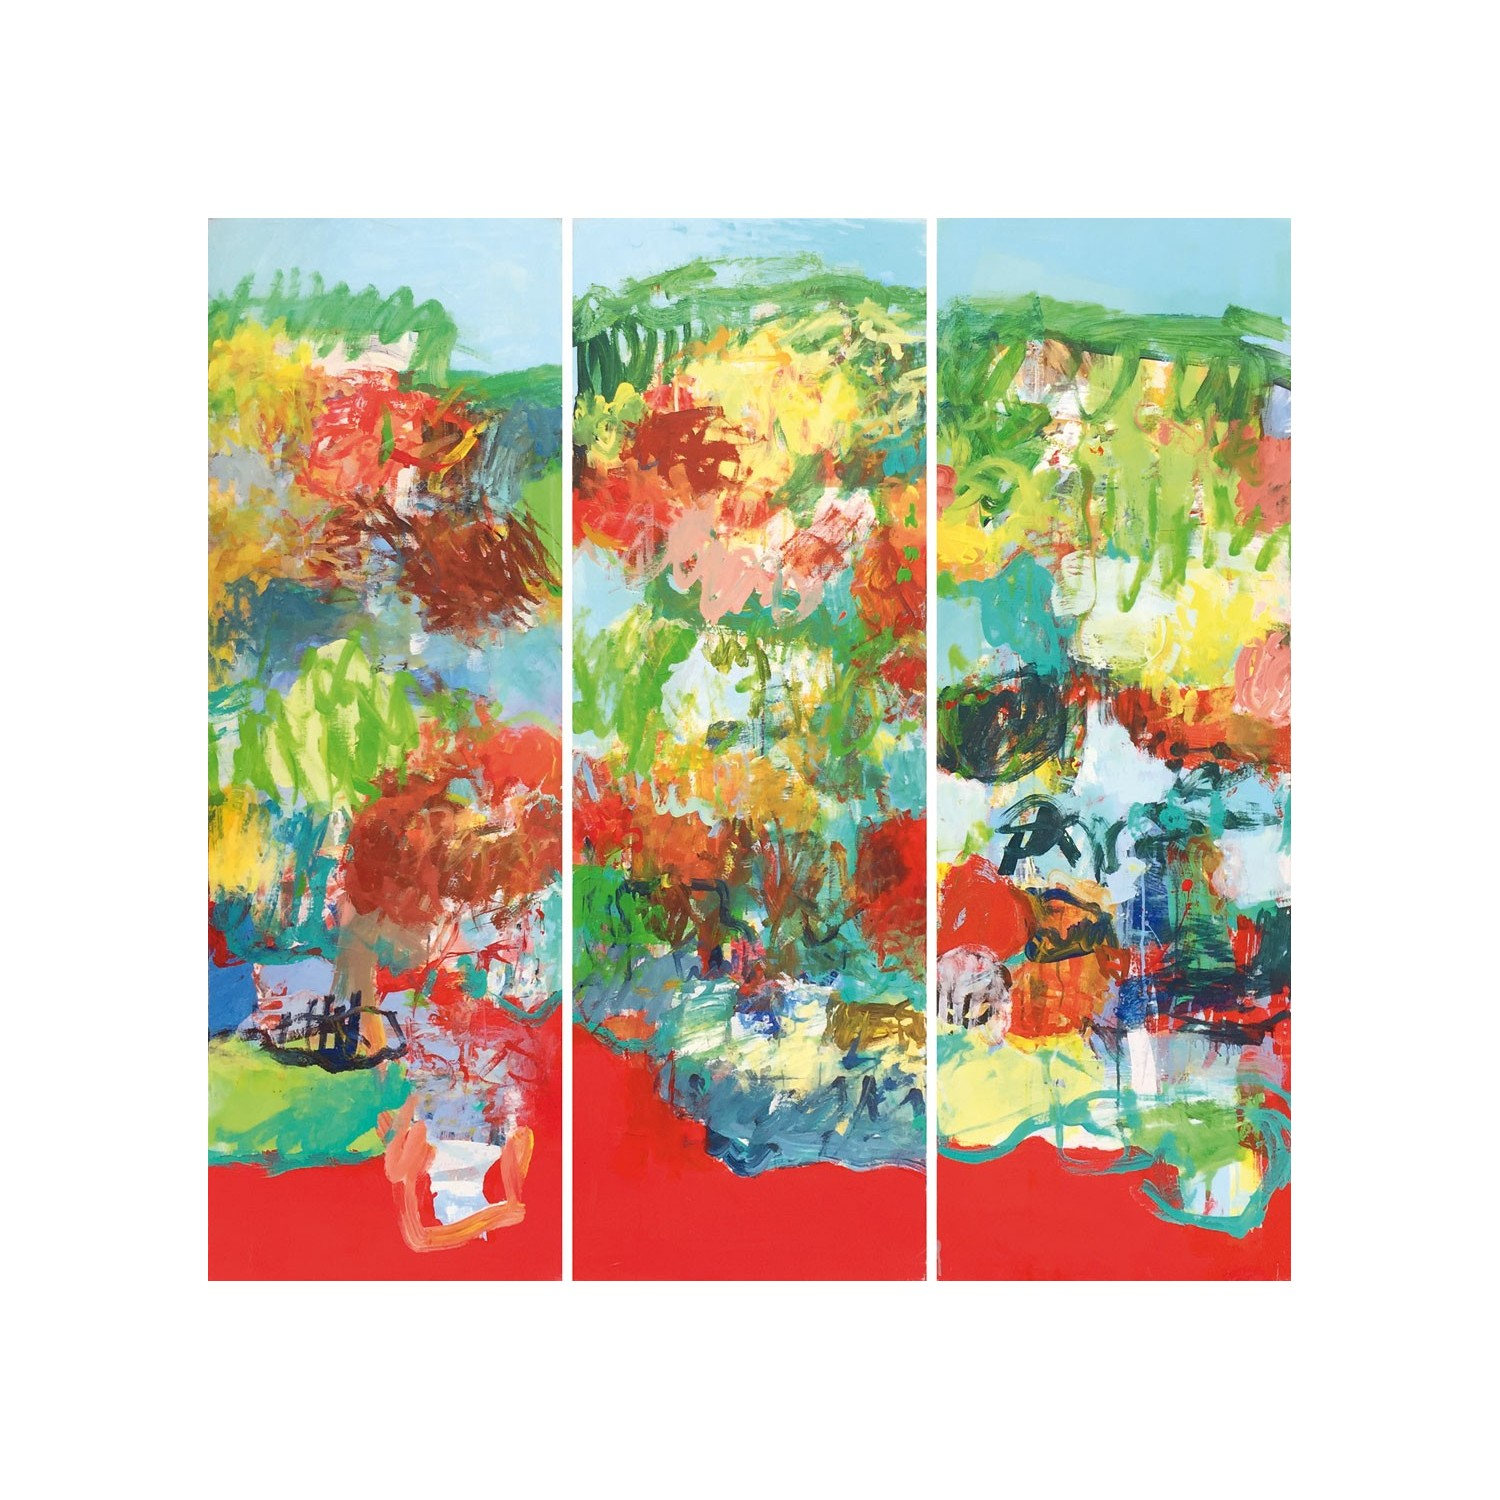 GIVERNY 1, 2 & 3 (triptyque-3 formats 100x50cm)